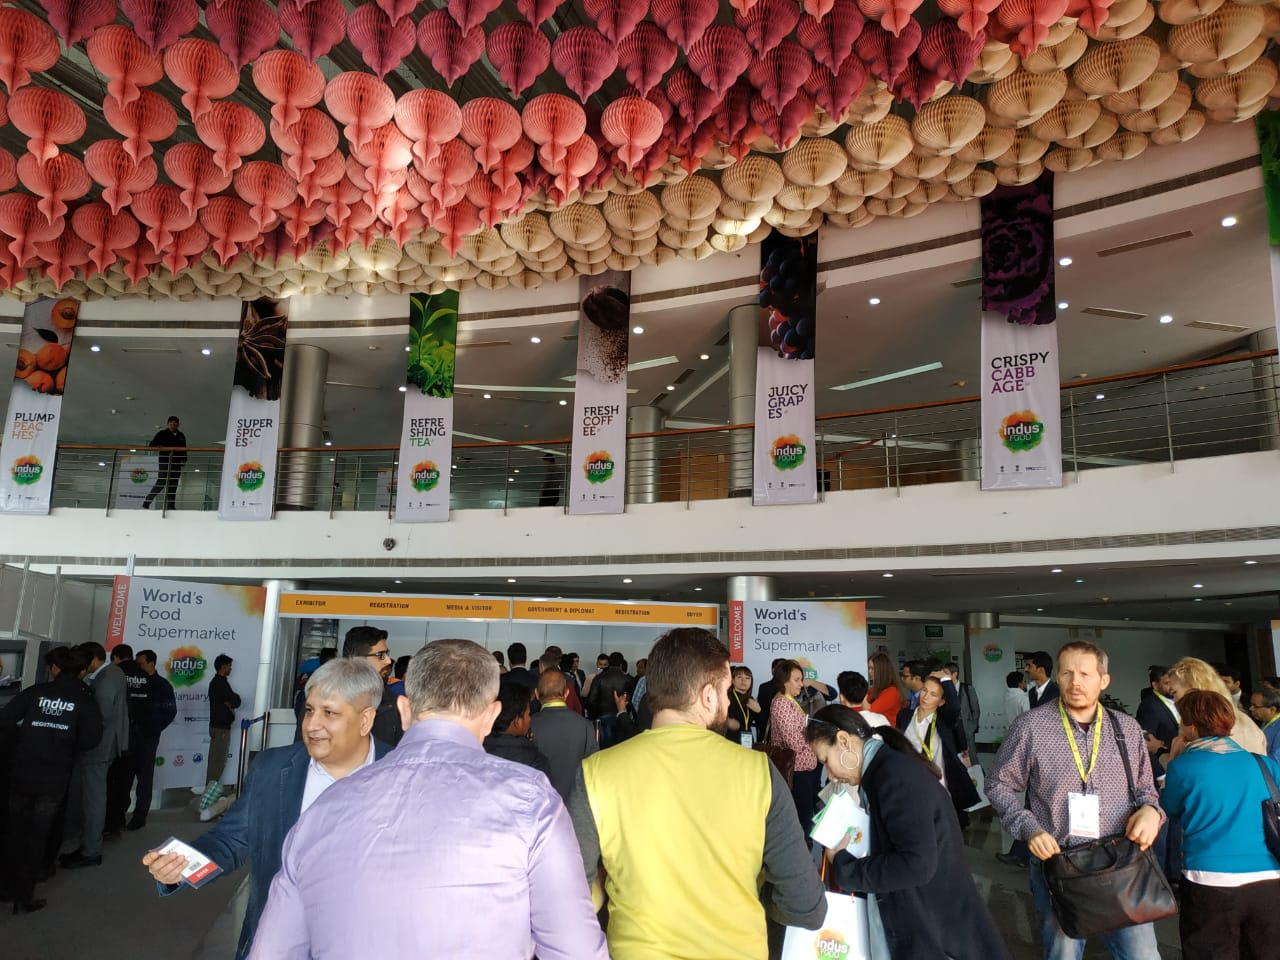 Over 1,400 exhibitors and visitors at Indusfood international fair